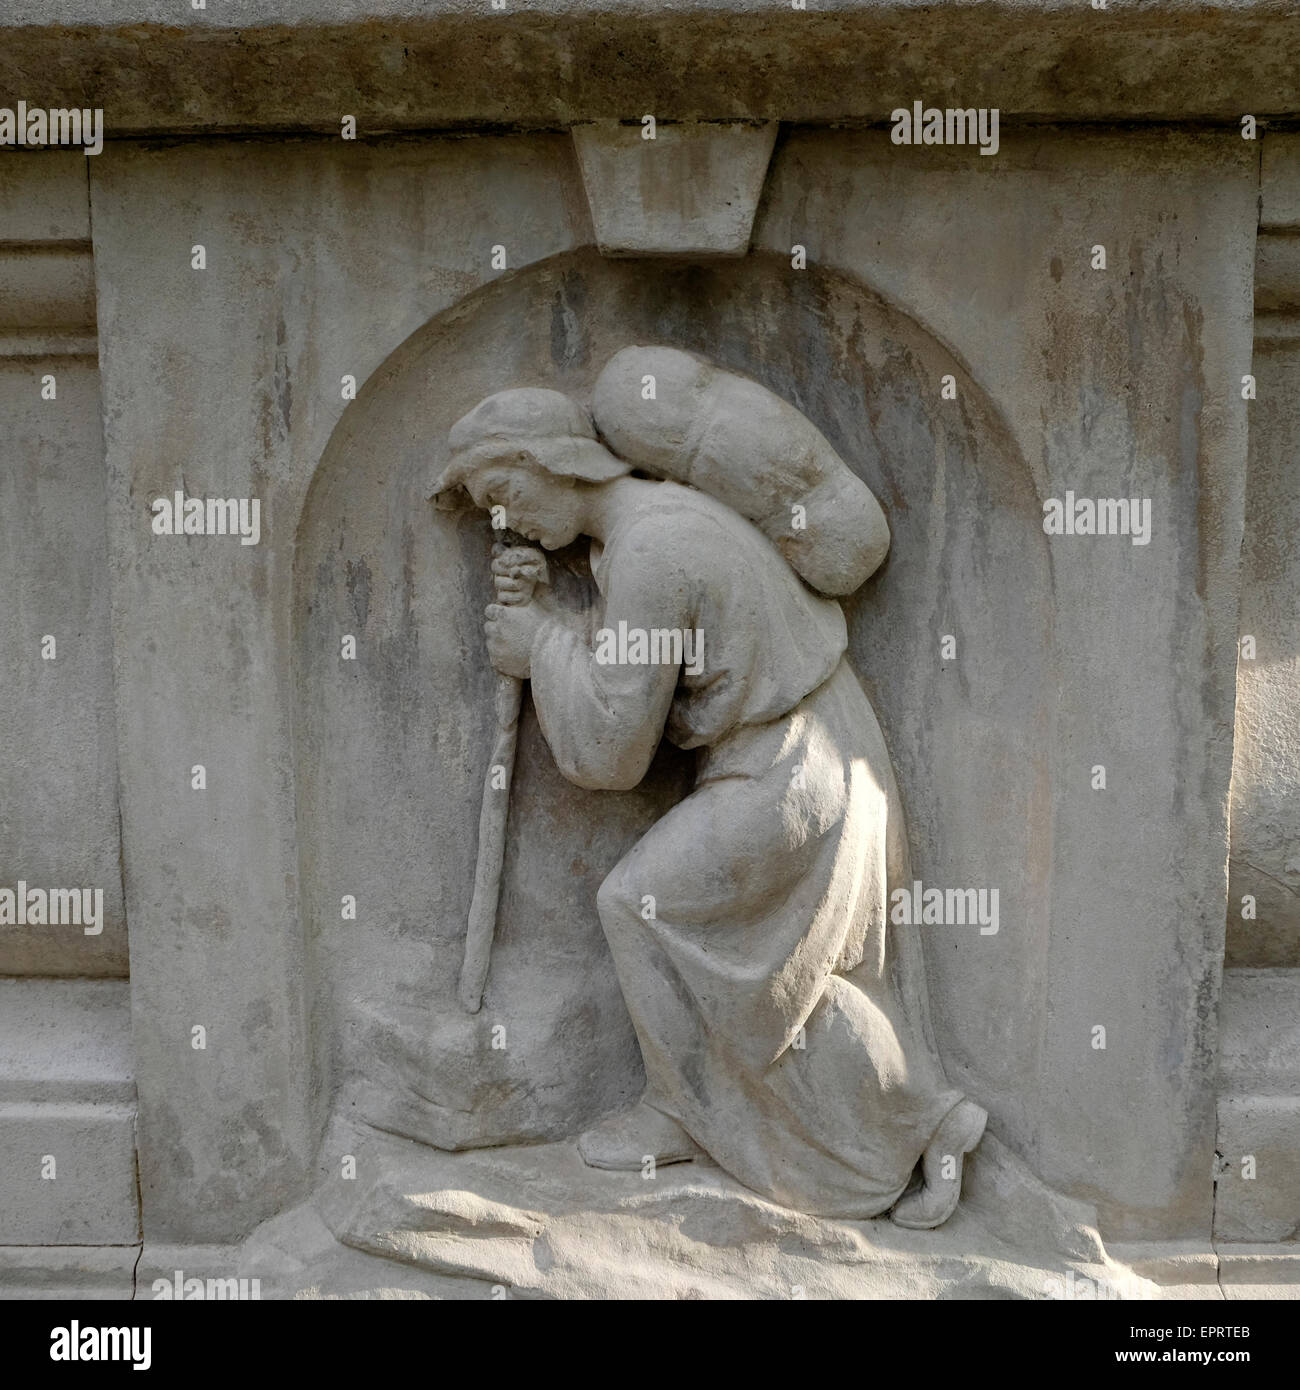 Pilgrim detail on the John Bunyan Memorial in Bunhill Fields Cemetery, Islington, London UK  KATHY DEWITT - Stock Image